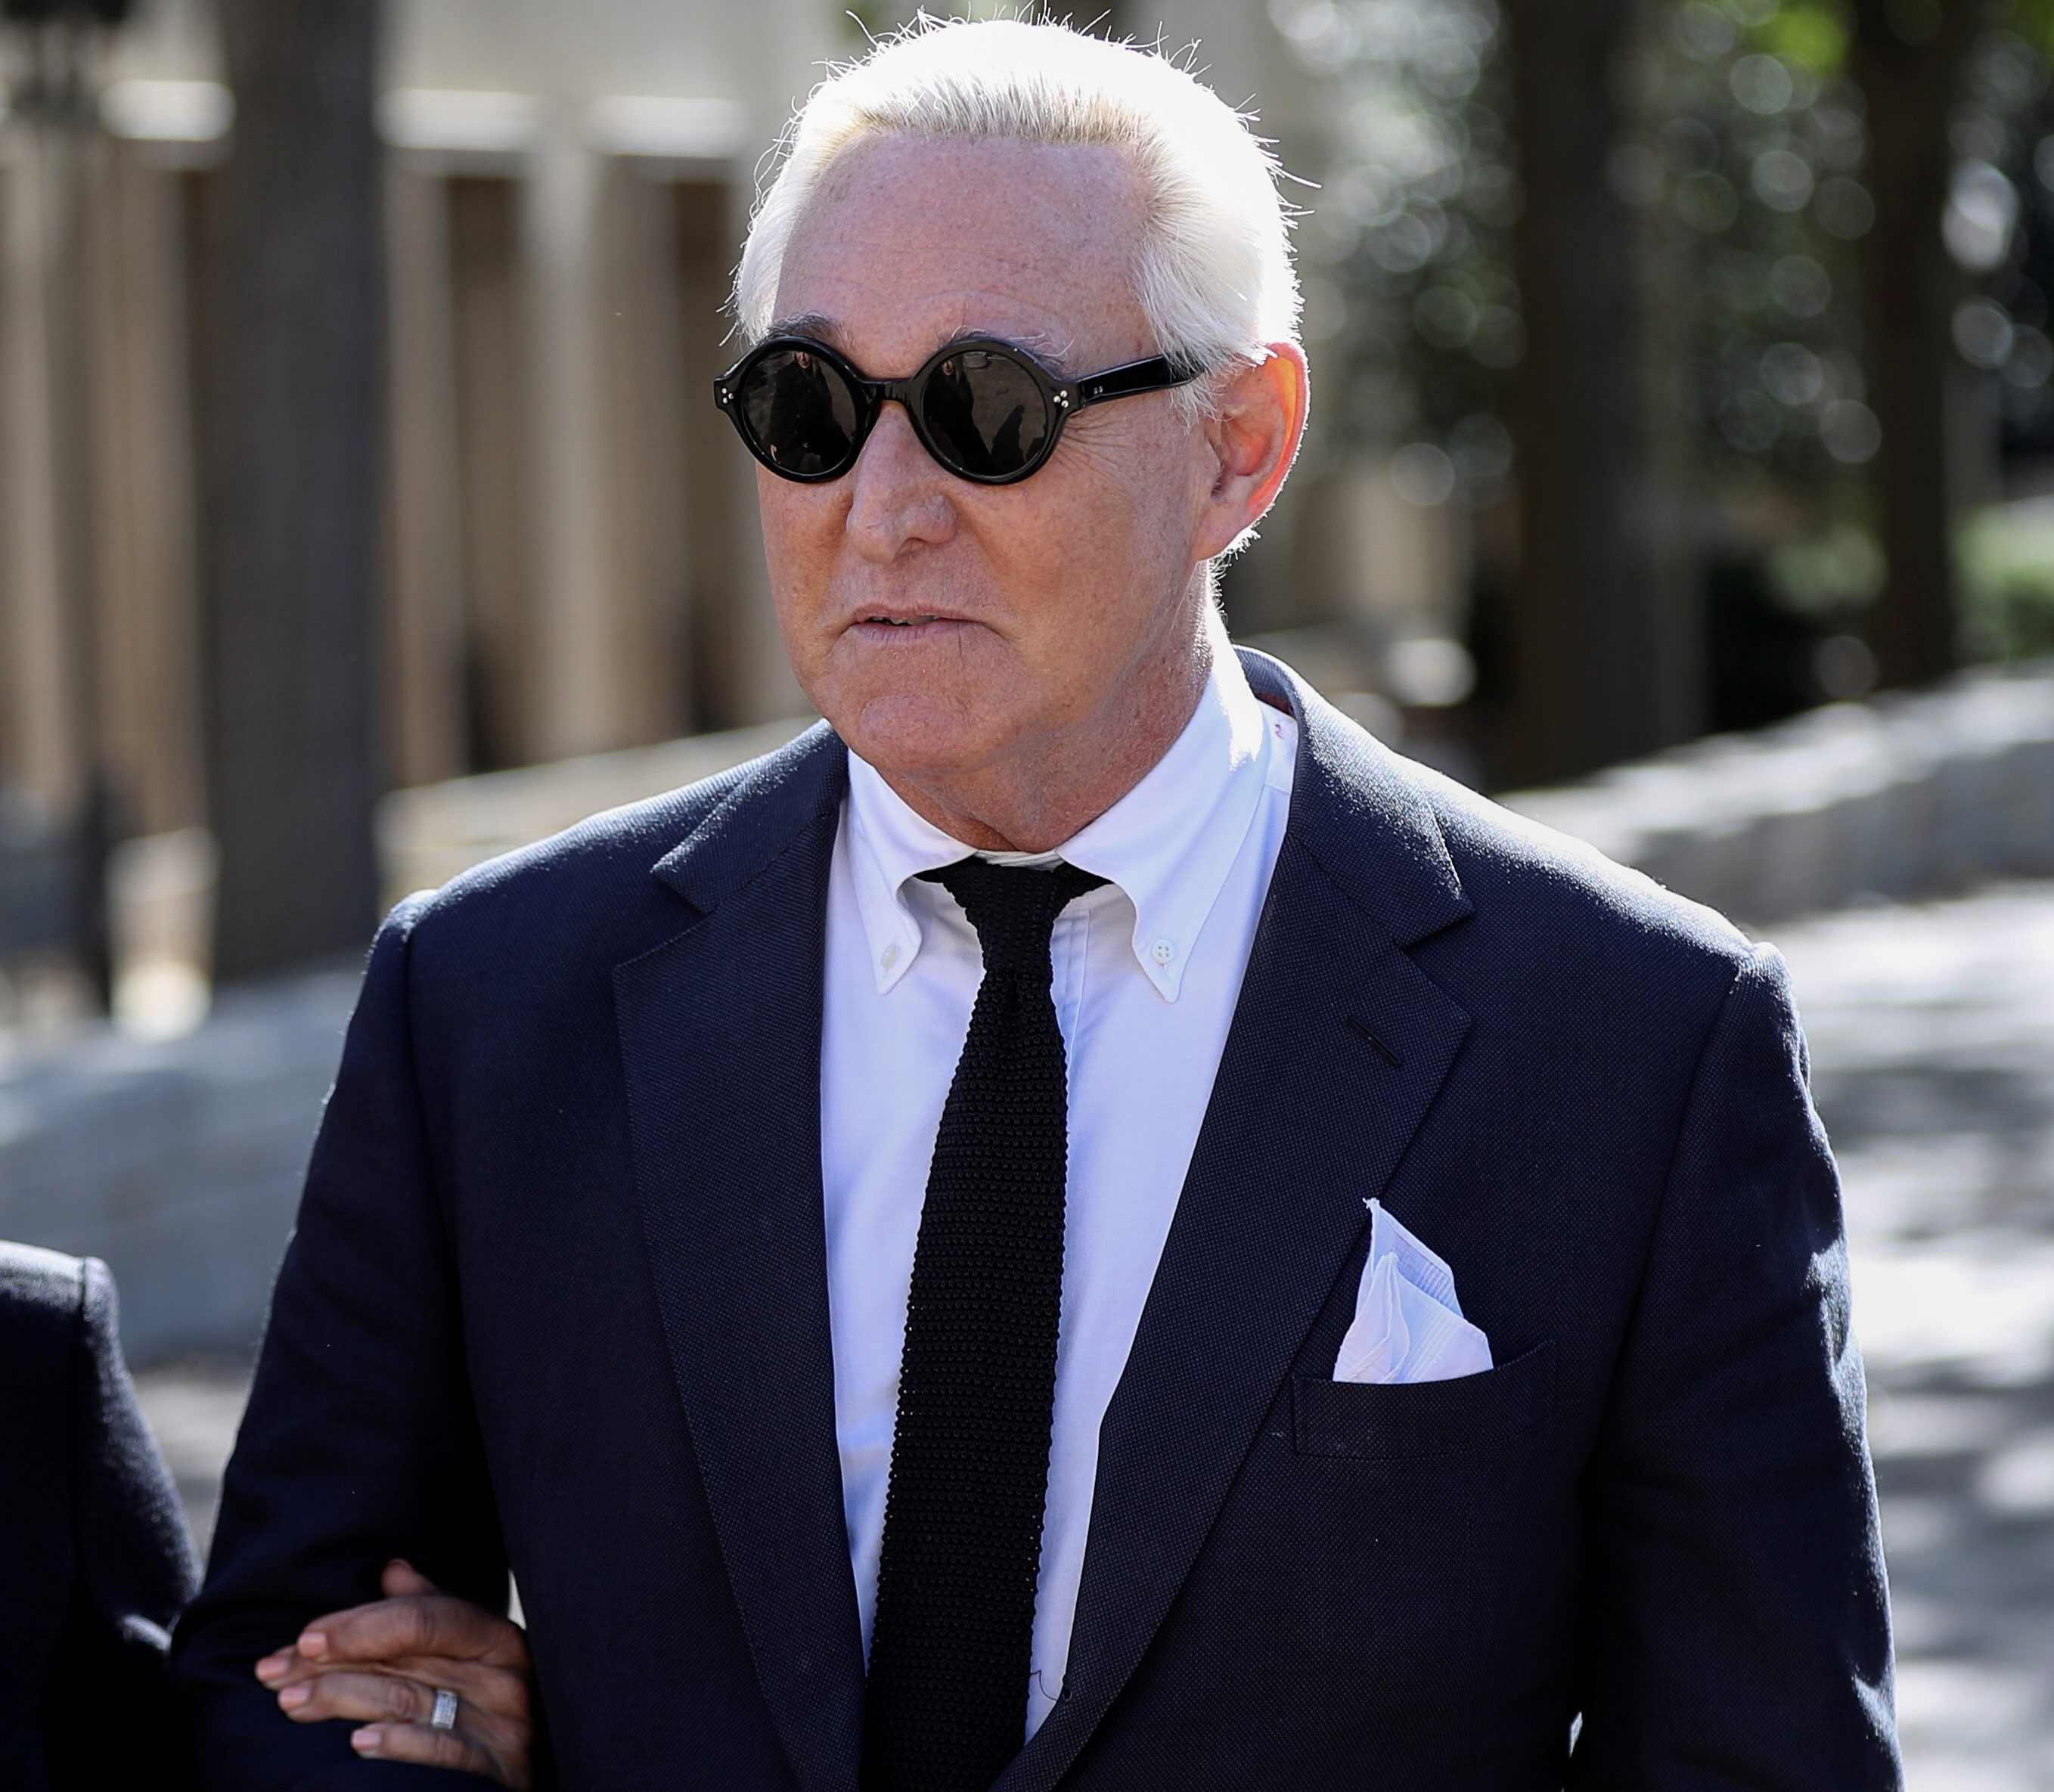 Roger Stone, former campaign adviser to U.S. President Donald Trump, is accompanied by his wife Nydia, as he departs following a pre-trial hearing at U.S. District Court in Washington, U.S., Nov. 4, 2019. REUTERS/Siphiwe Sibeko